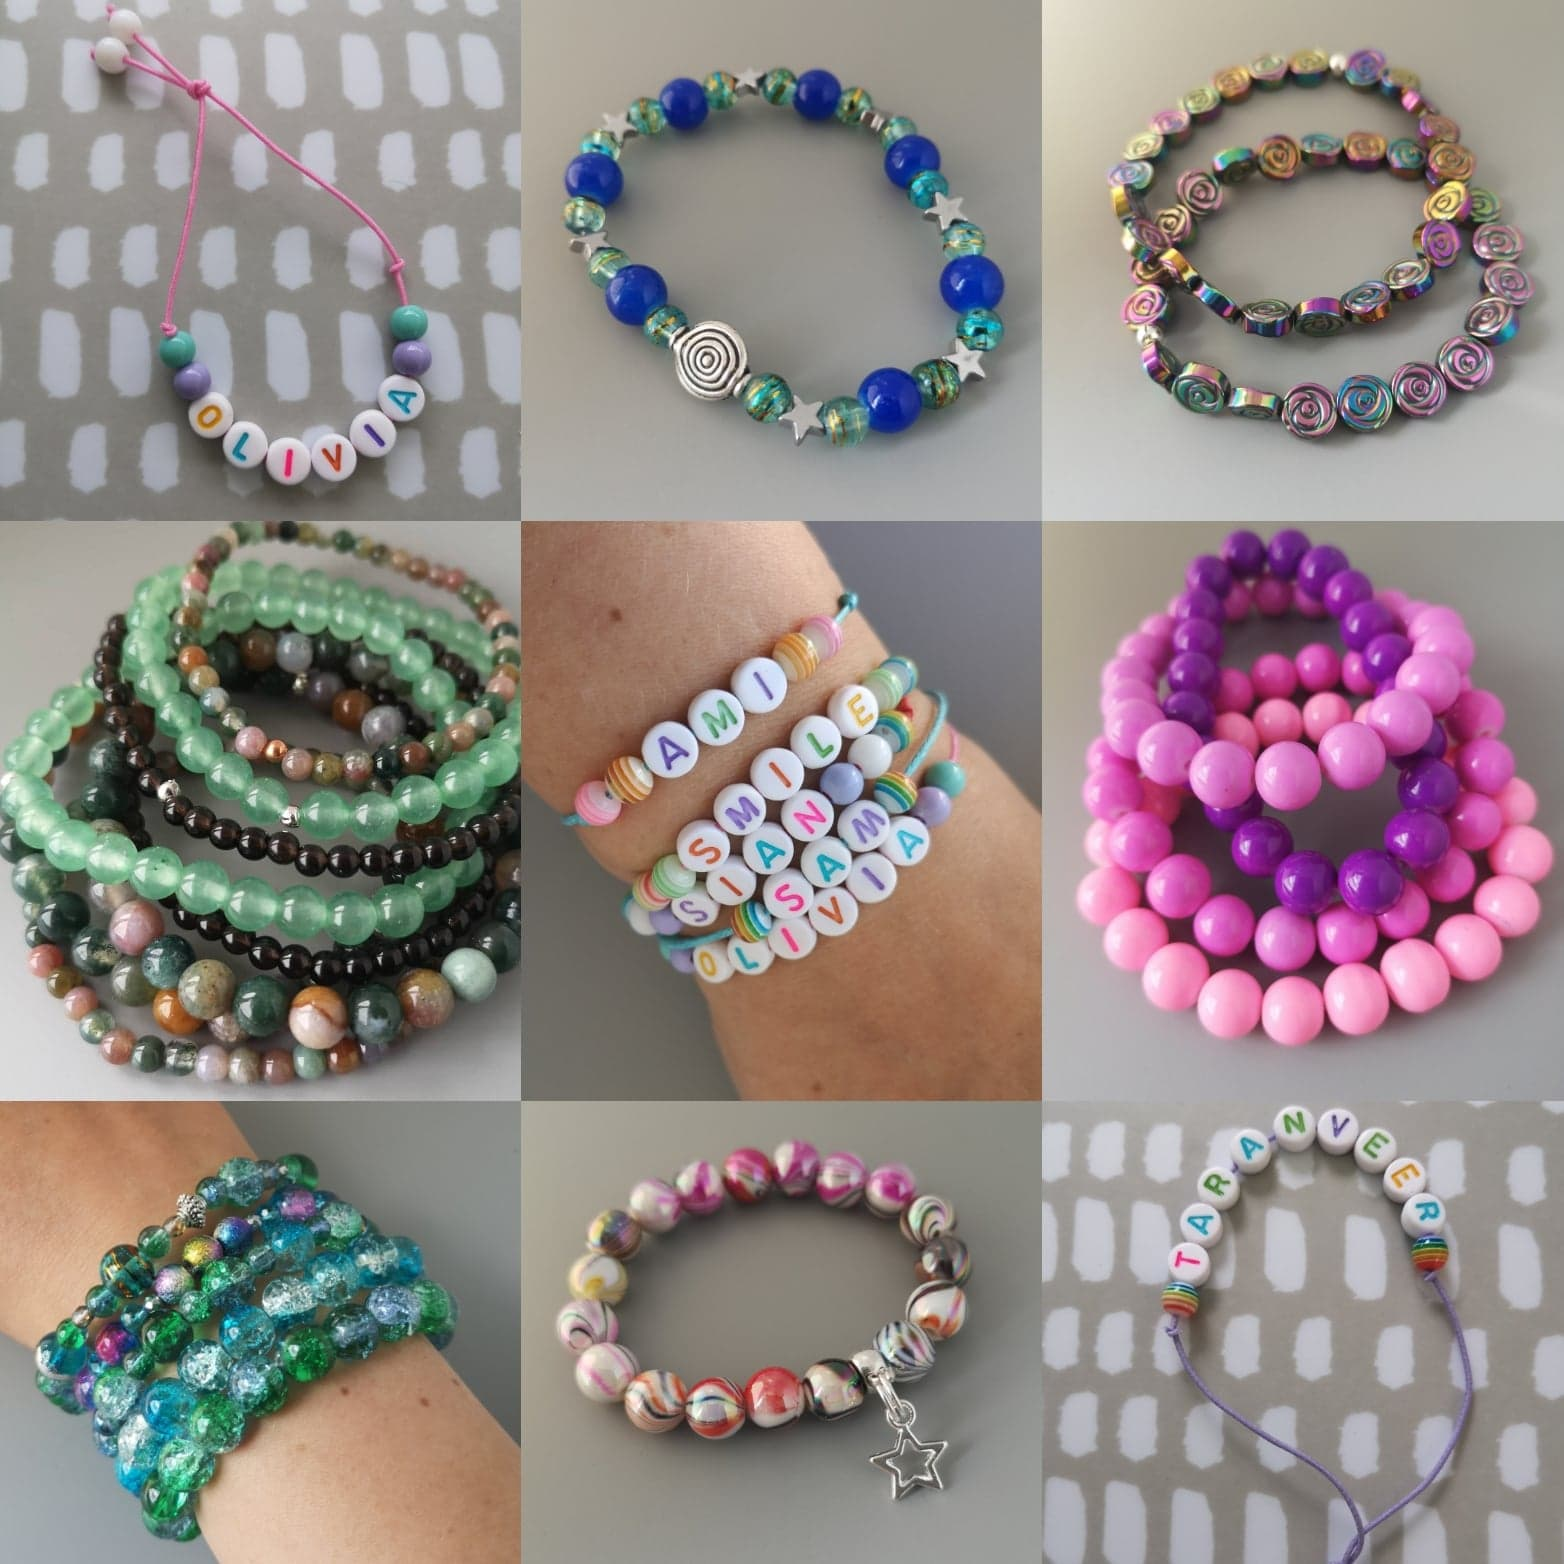 15 September | 1pm - 3pm   Choose from hundreds of beautiful beads to make and take away your own name bracelet or beaded bracelet. Suitable for children and adults, just drop in between 1.00pm and 3.00pm in the Gallery.  (from £3 per bracelet)